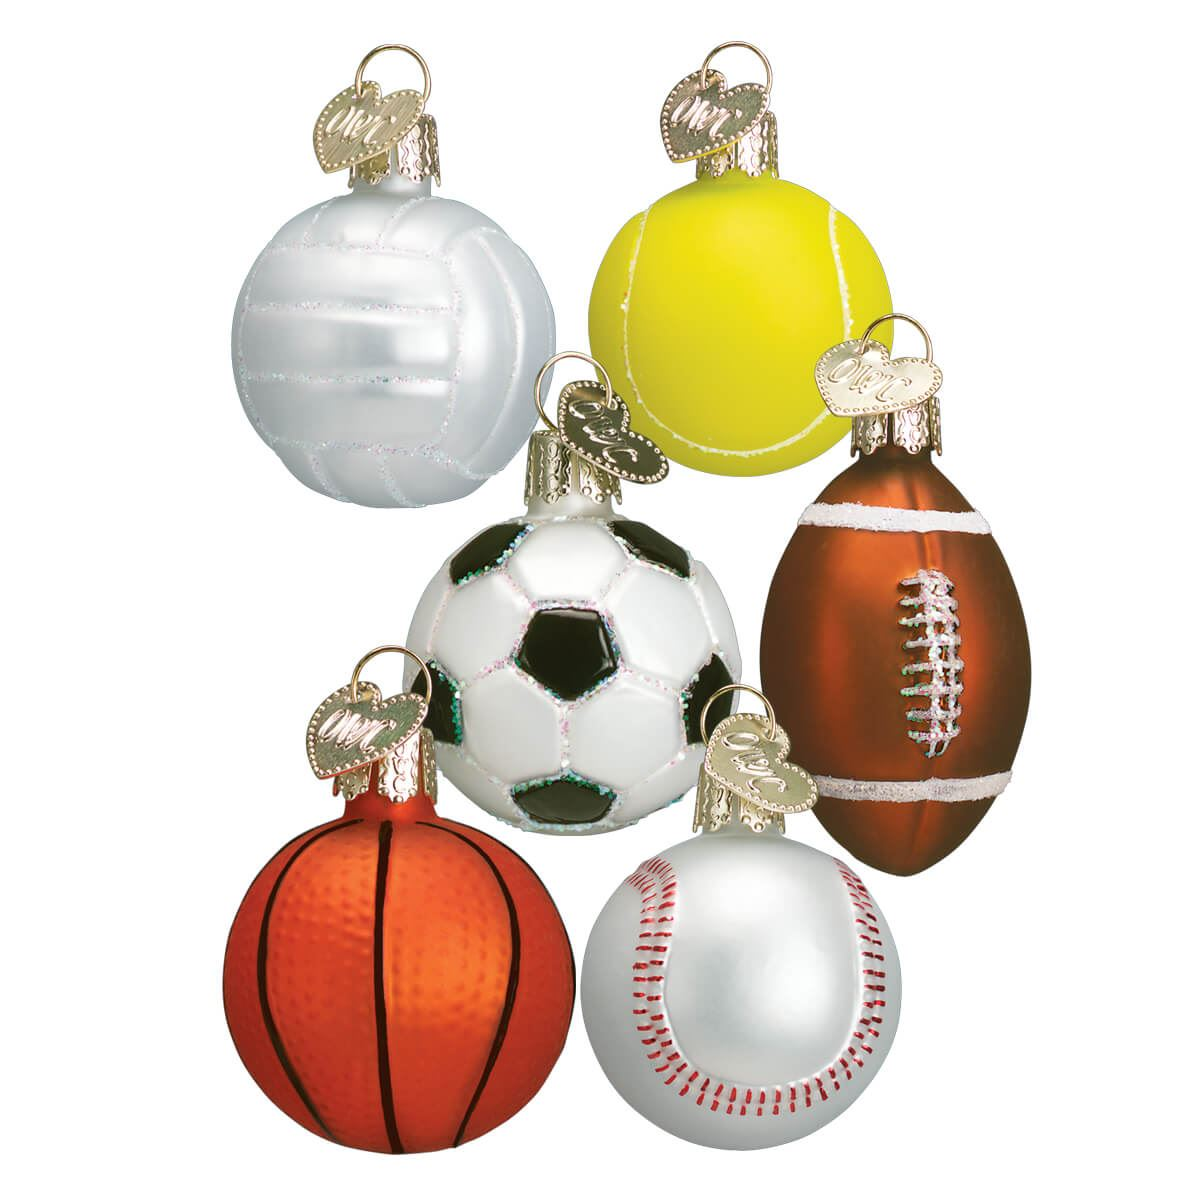 Miniature Sport Ball Ornaments Set 6 By Old World Christmas Traditions